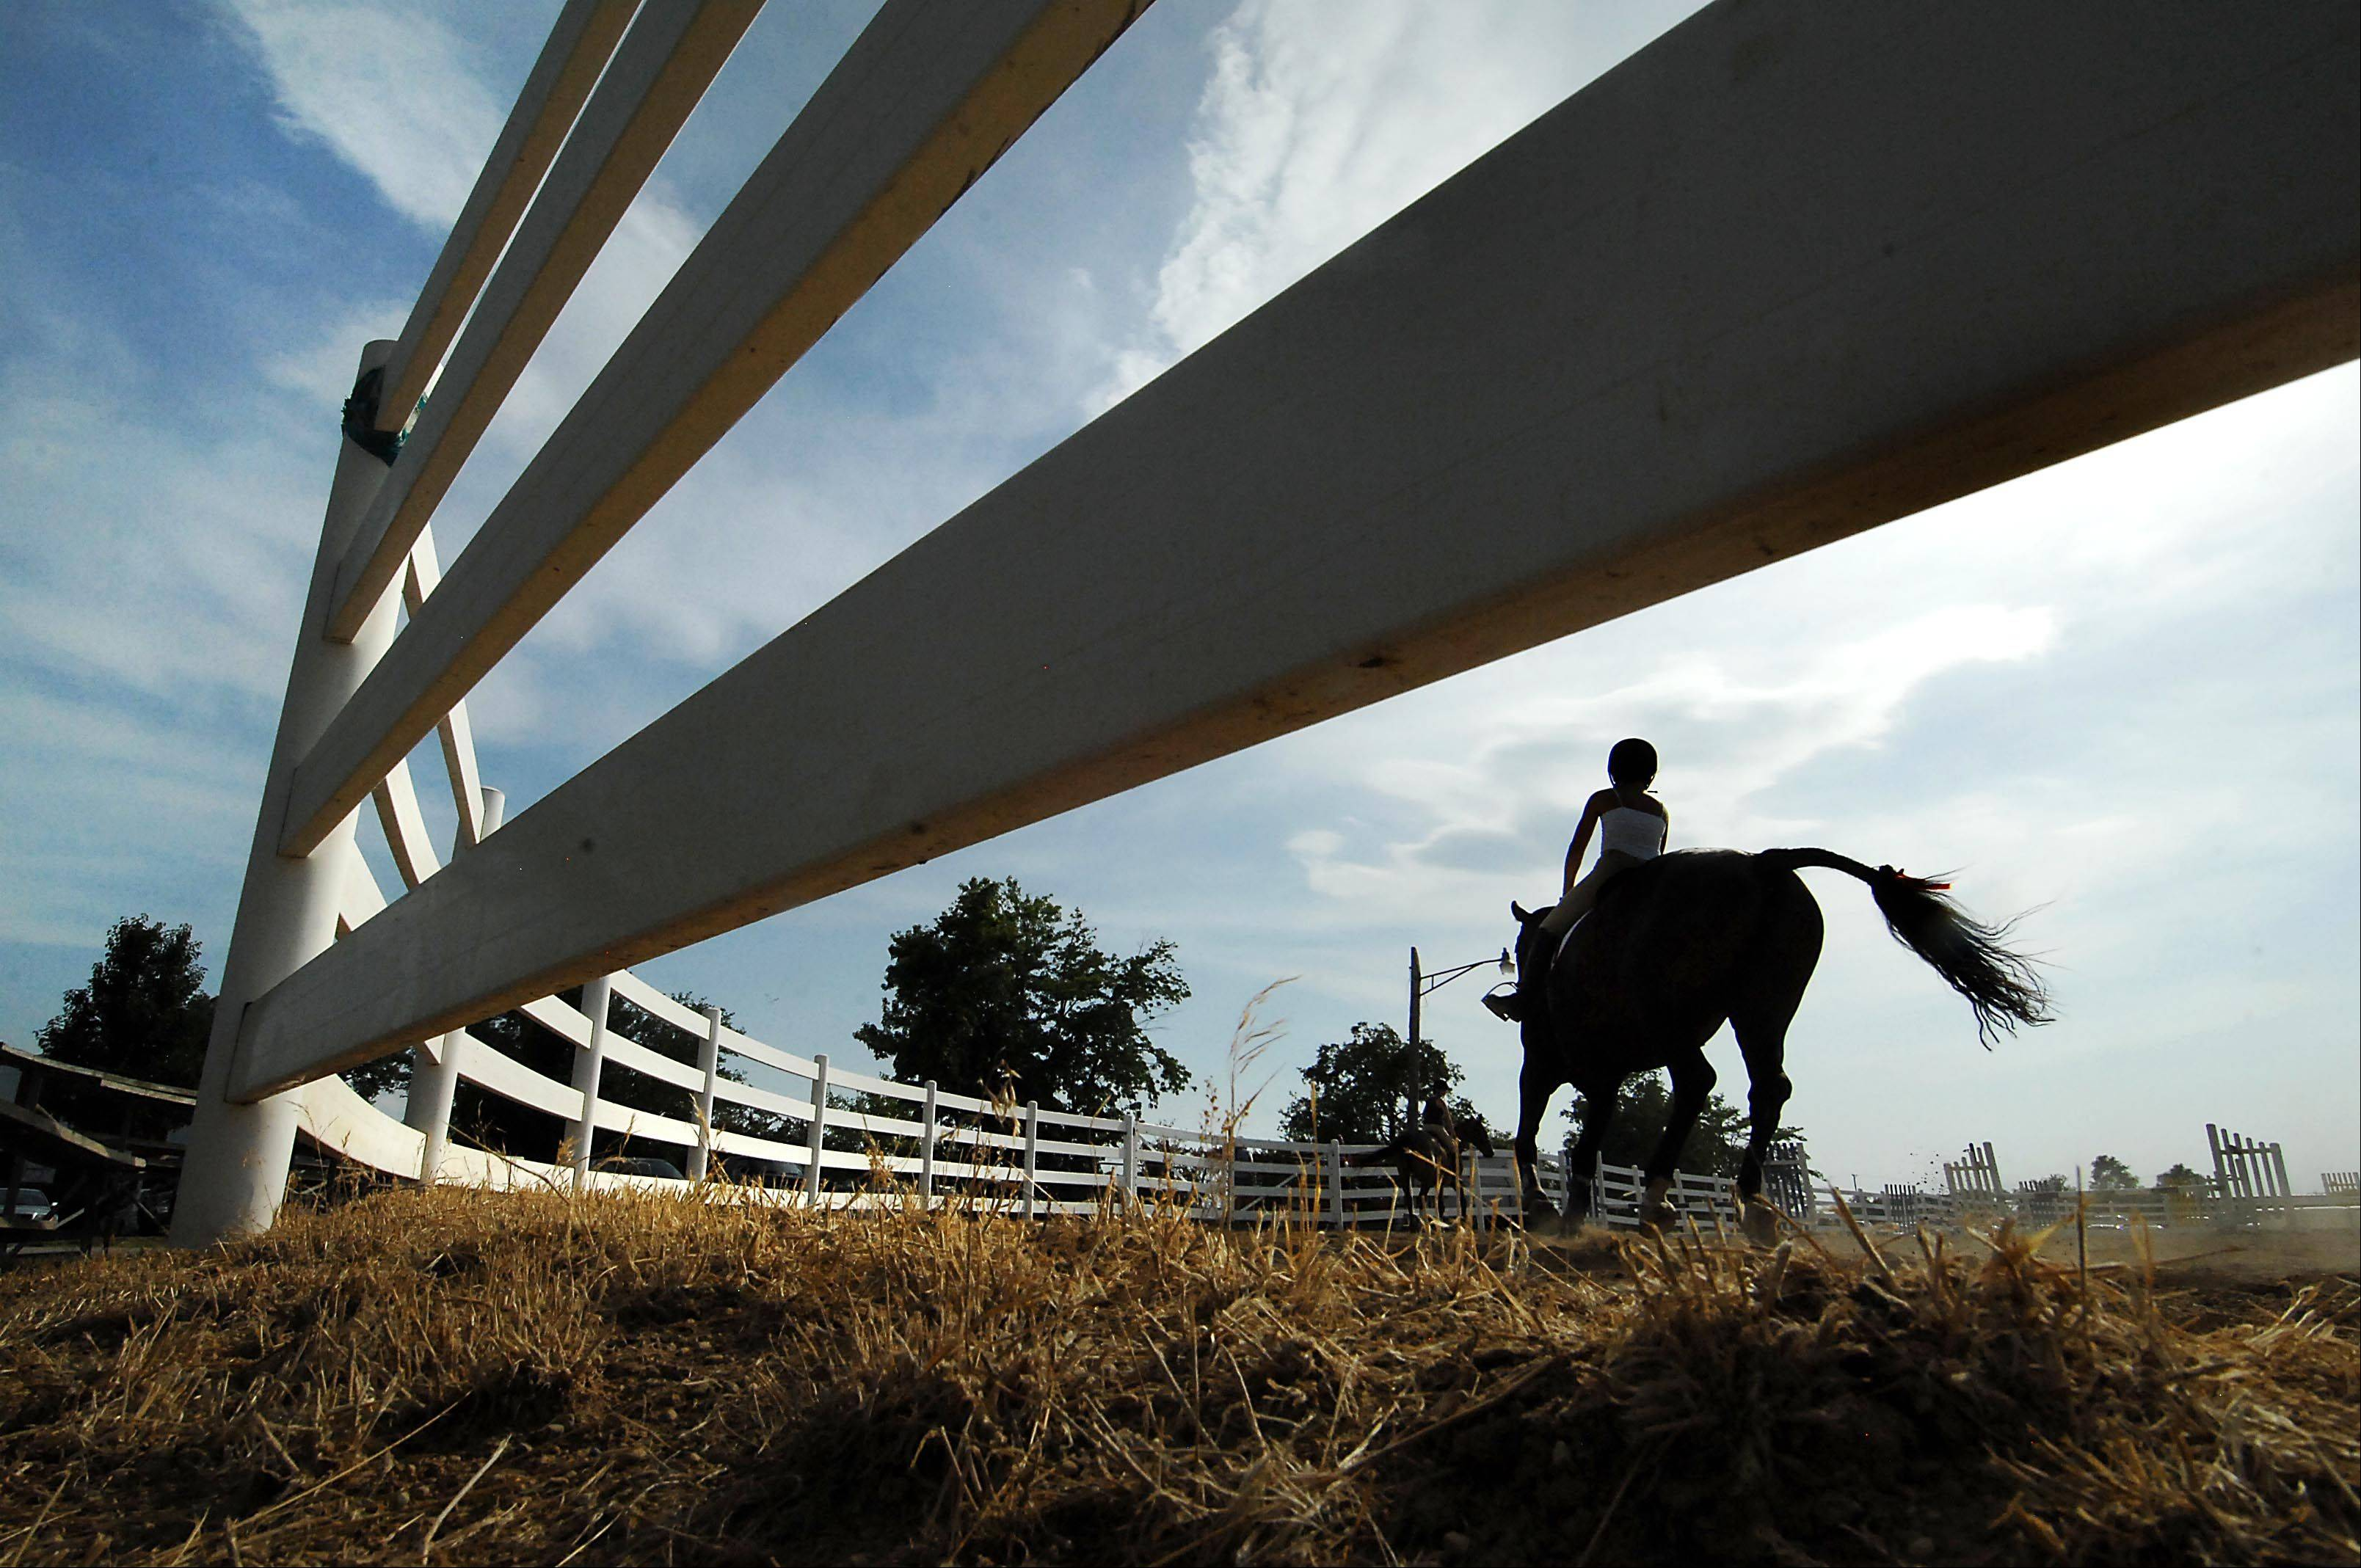 A young rider practices on the first day of the Kane County Fair Wednesday in St. Charles.